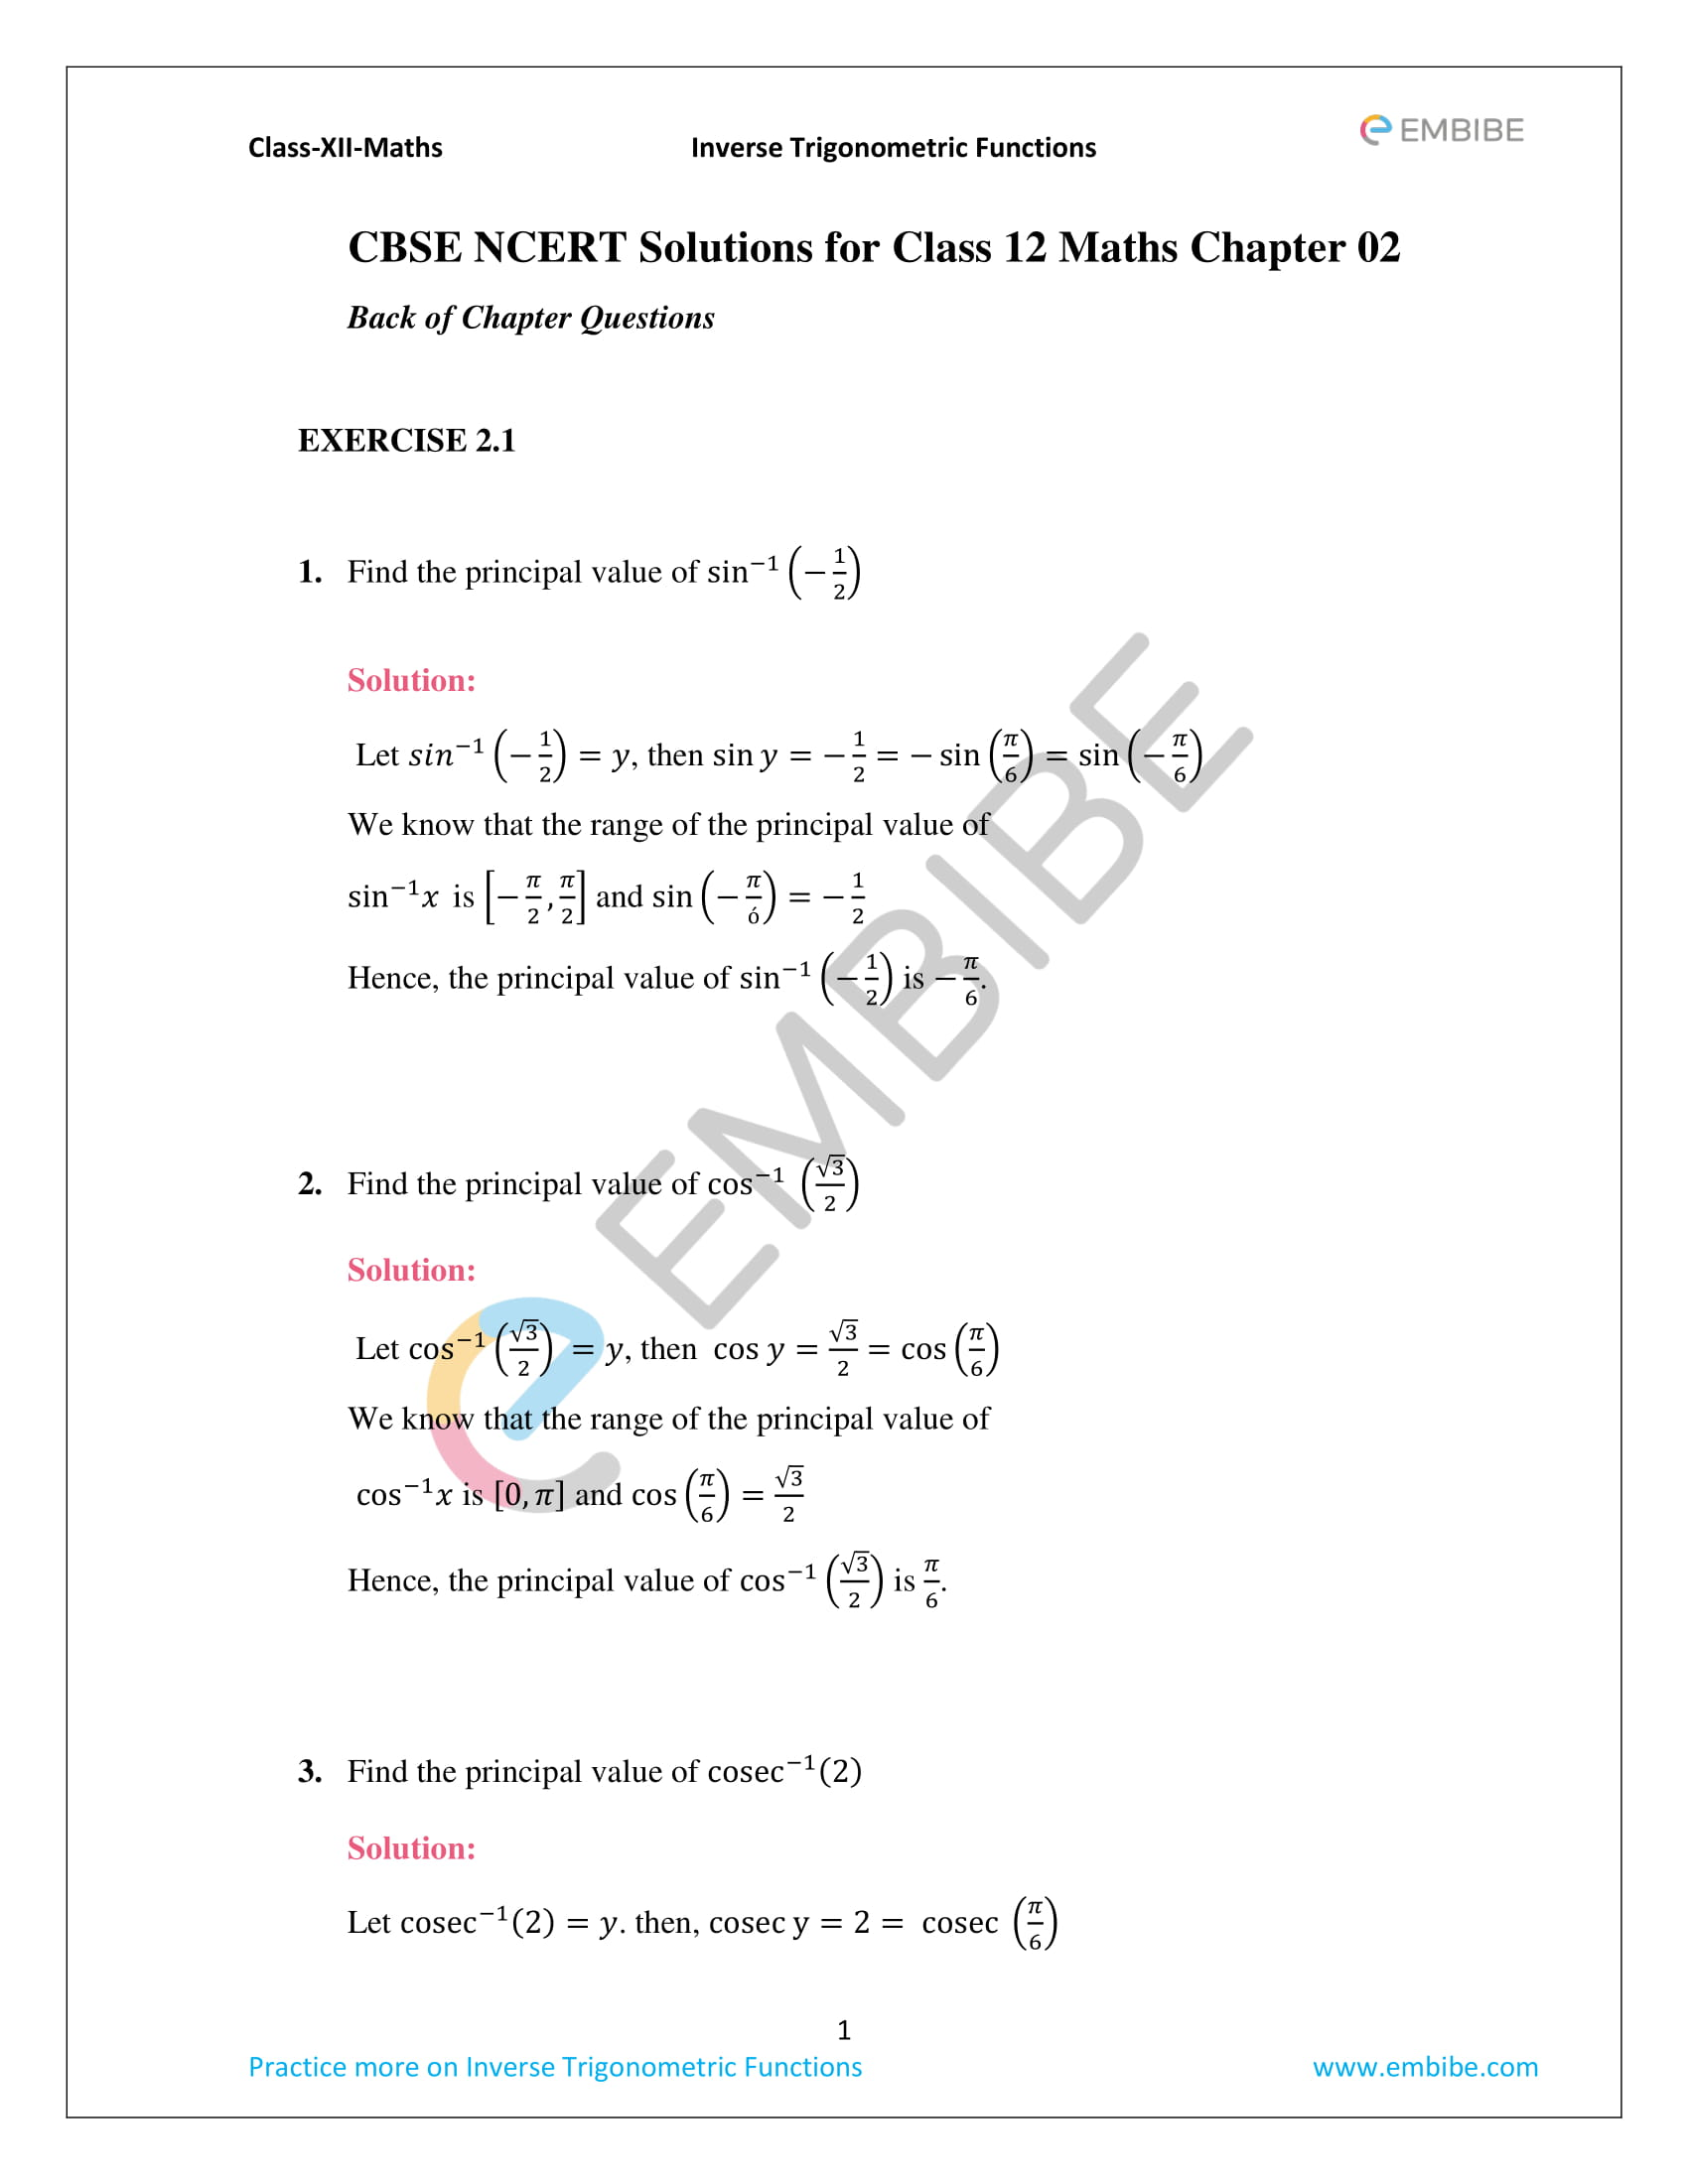 CBSE NCERT Solutions for Class 12 Maths Chapter 2